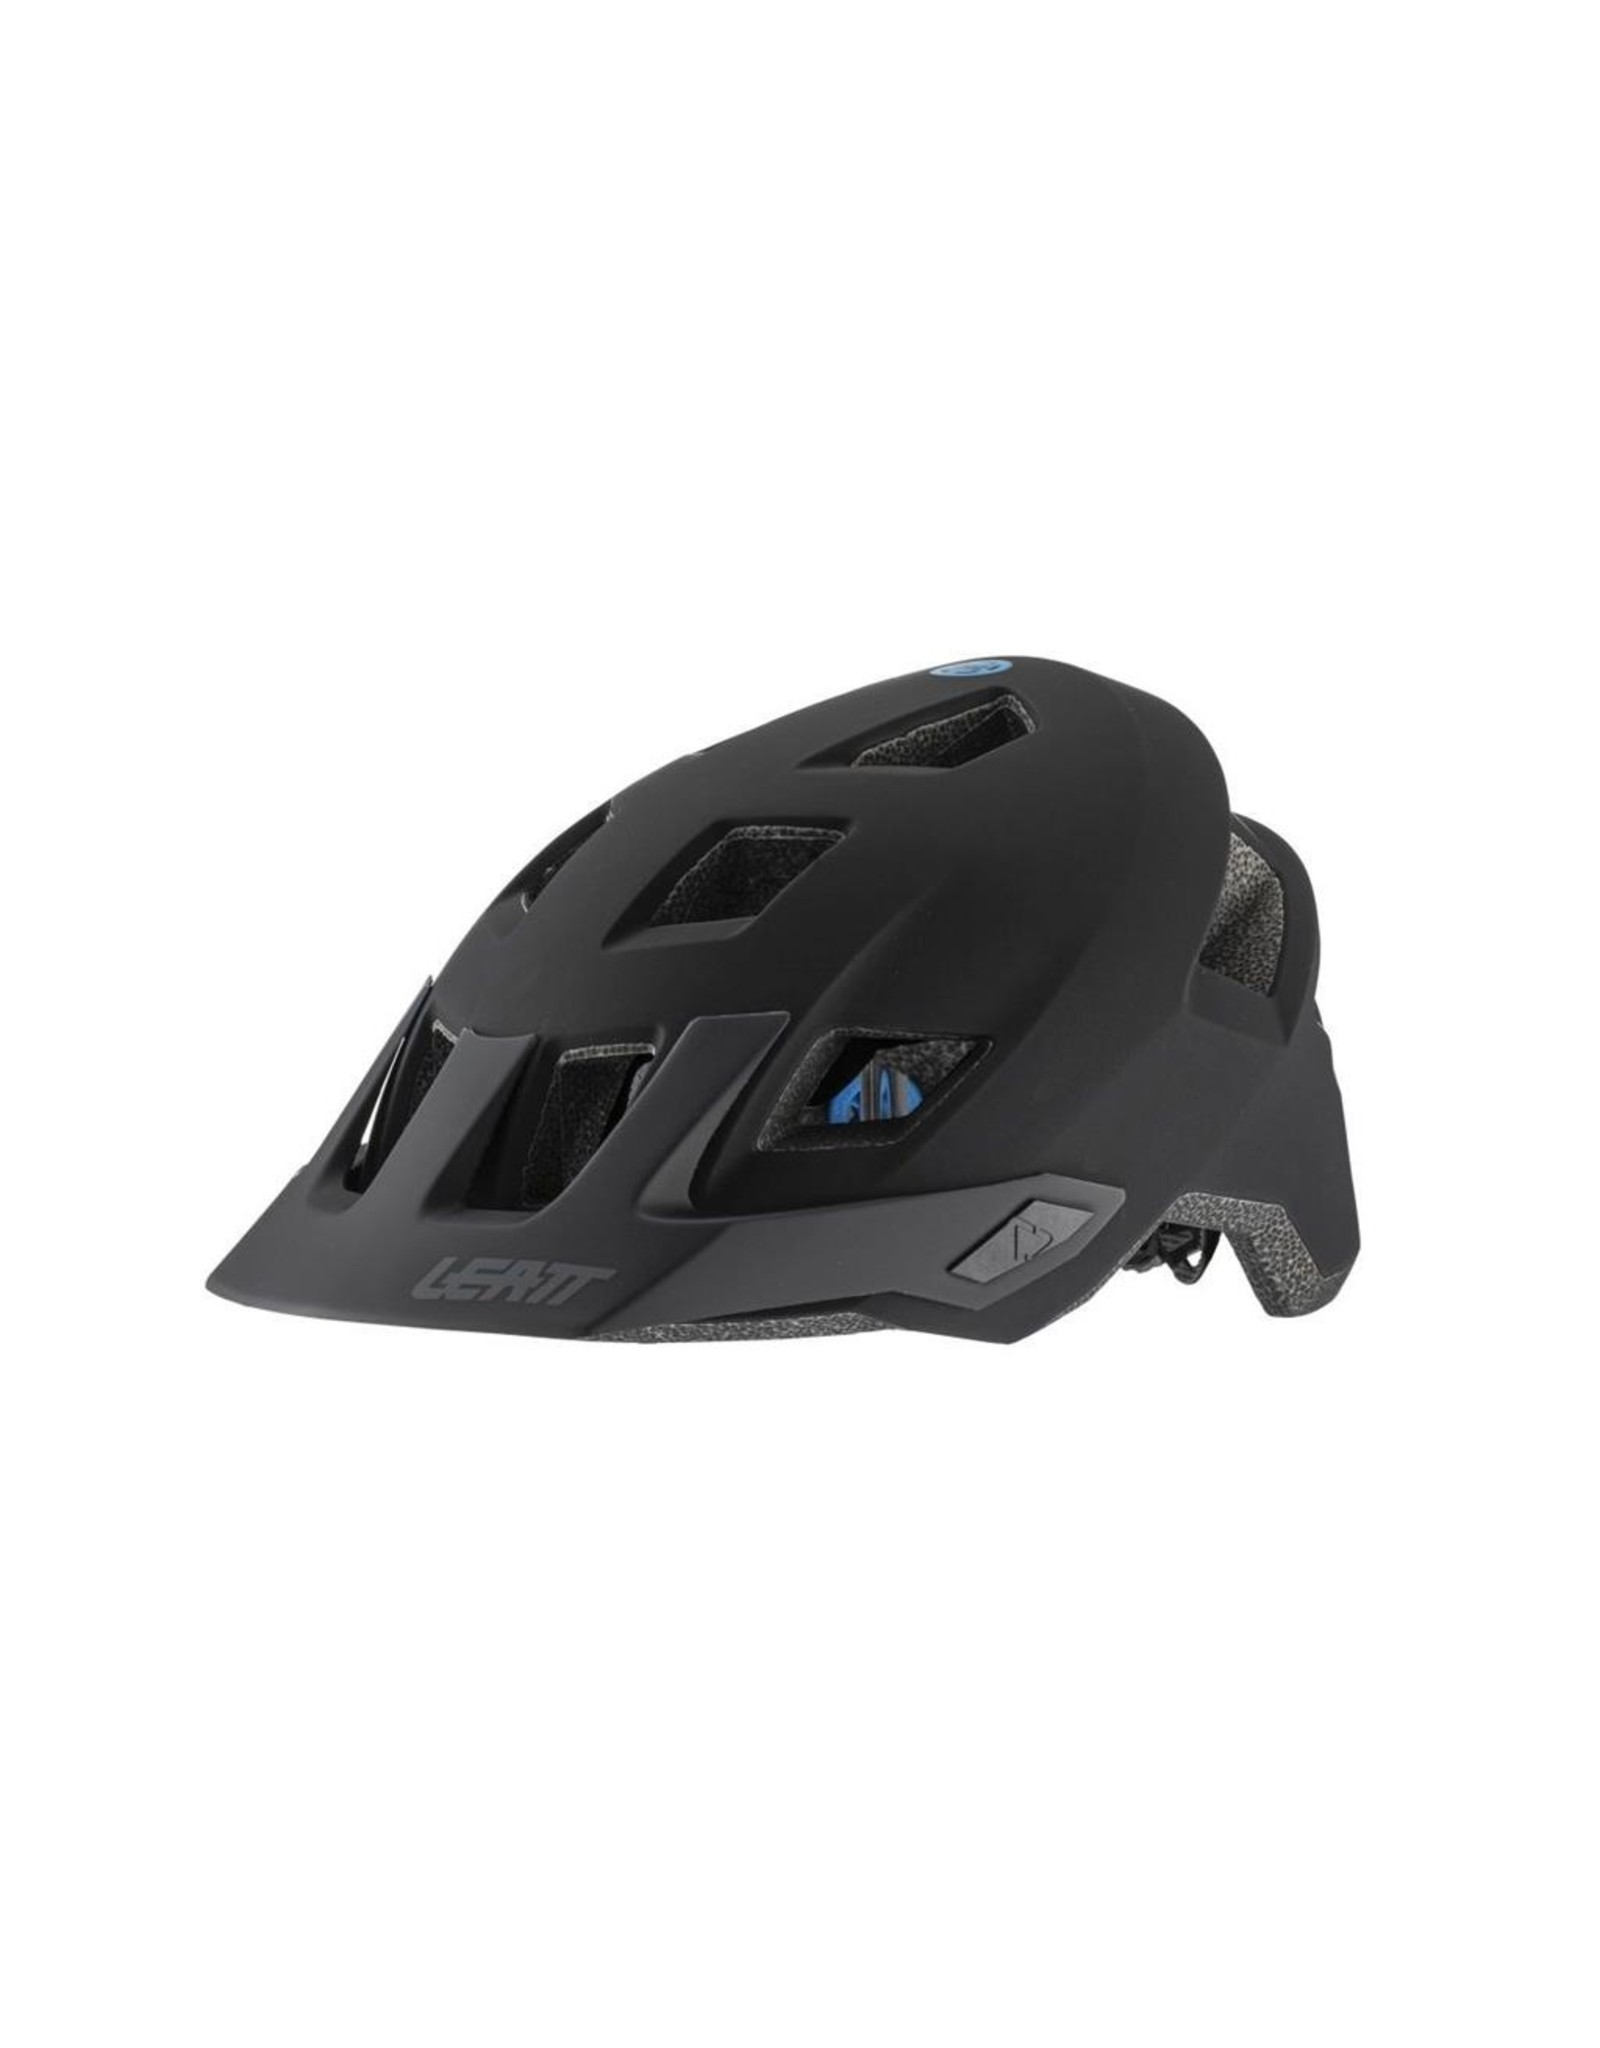 Leatt LEATT PROTECTION HELMET MTB 1.0 MOUNTAIN BLACK (59-63CM) L